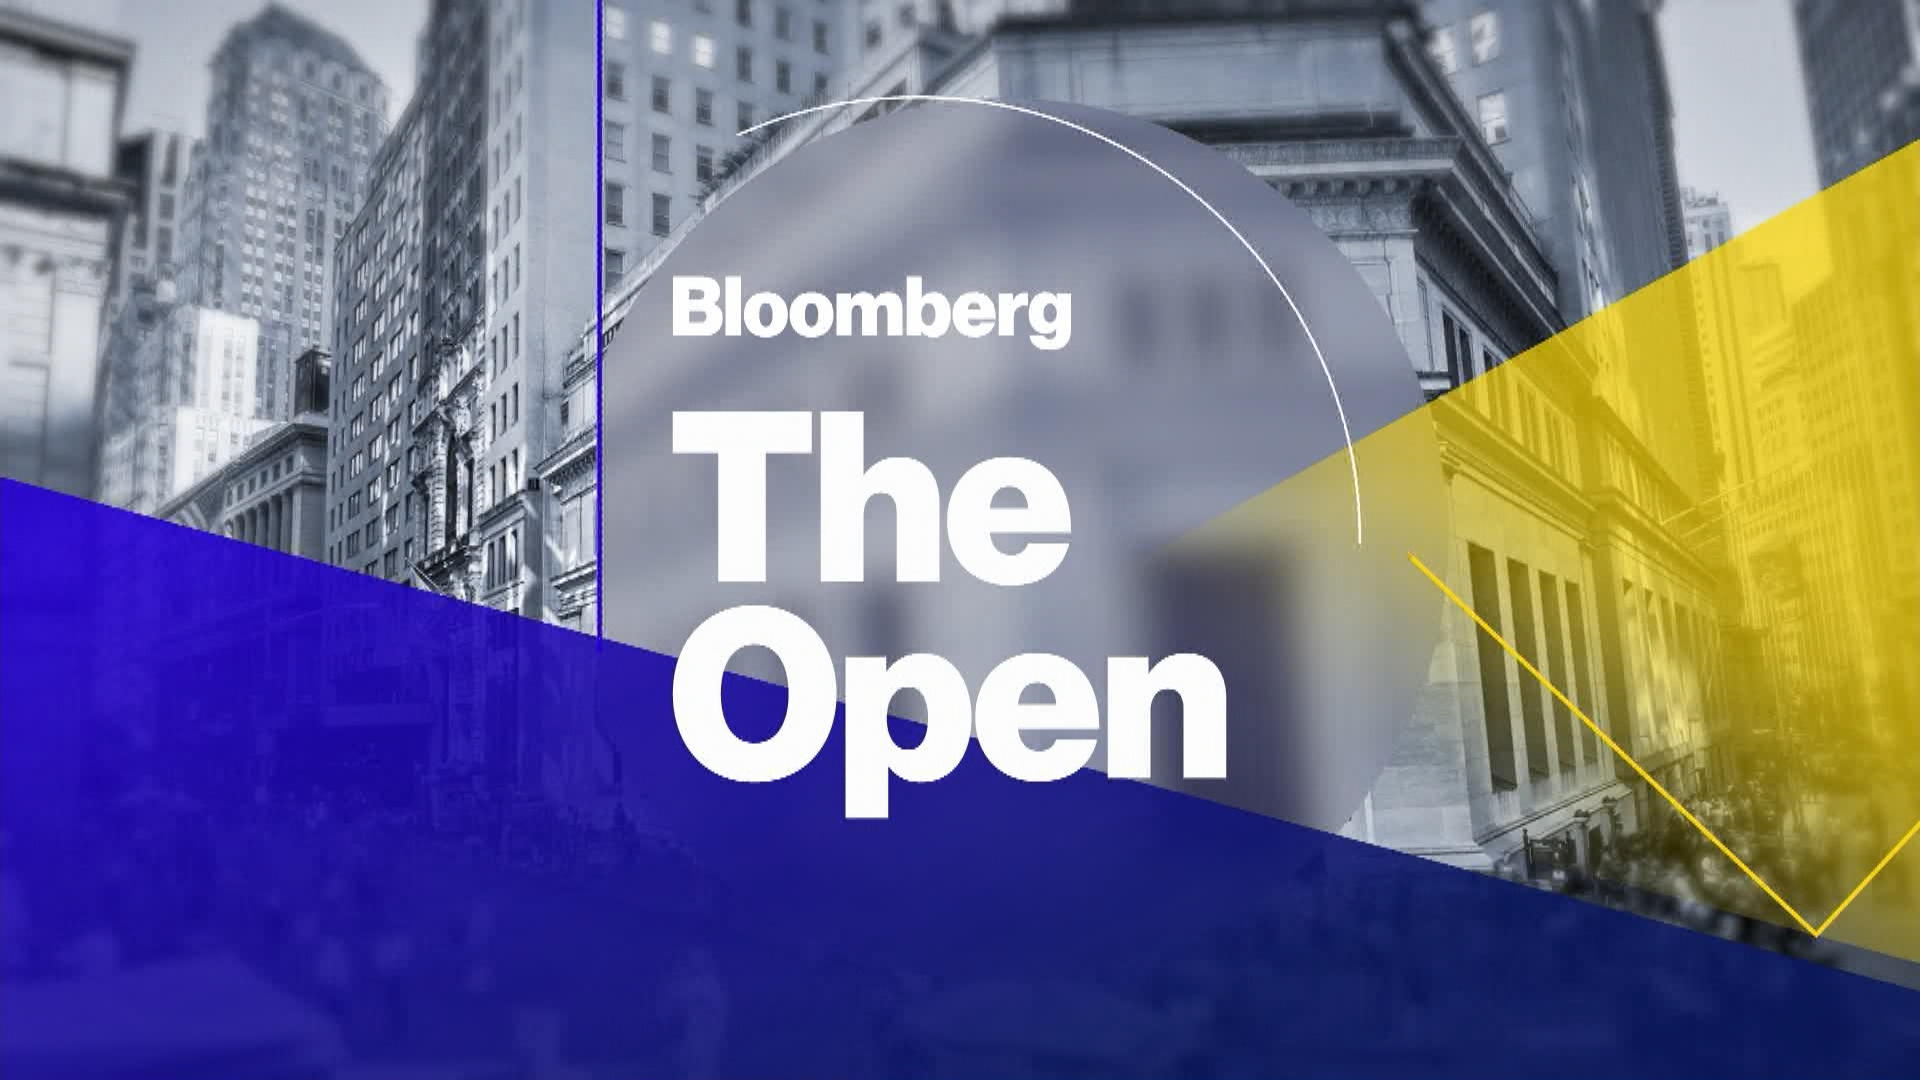 'Bloomberg The Open' Full Show (10/14/2019)